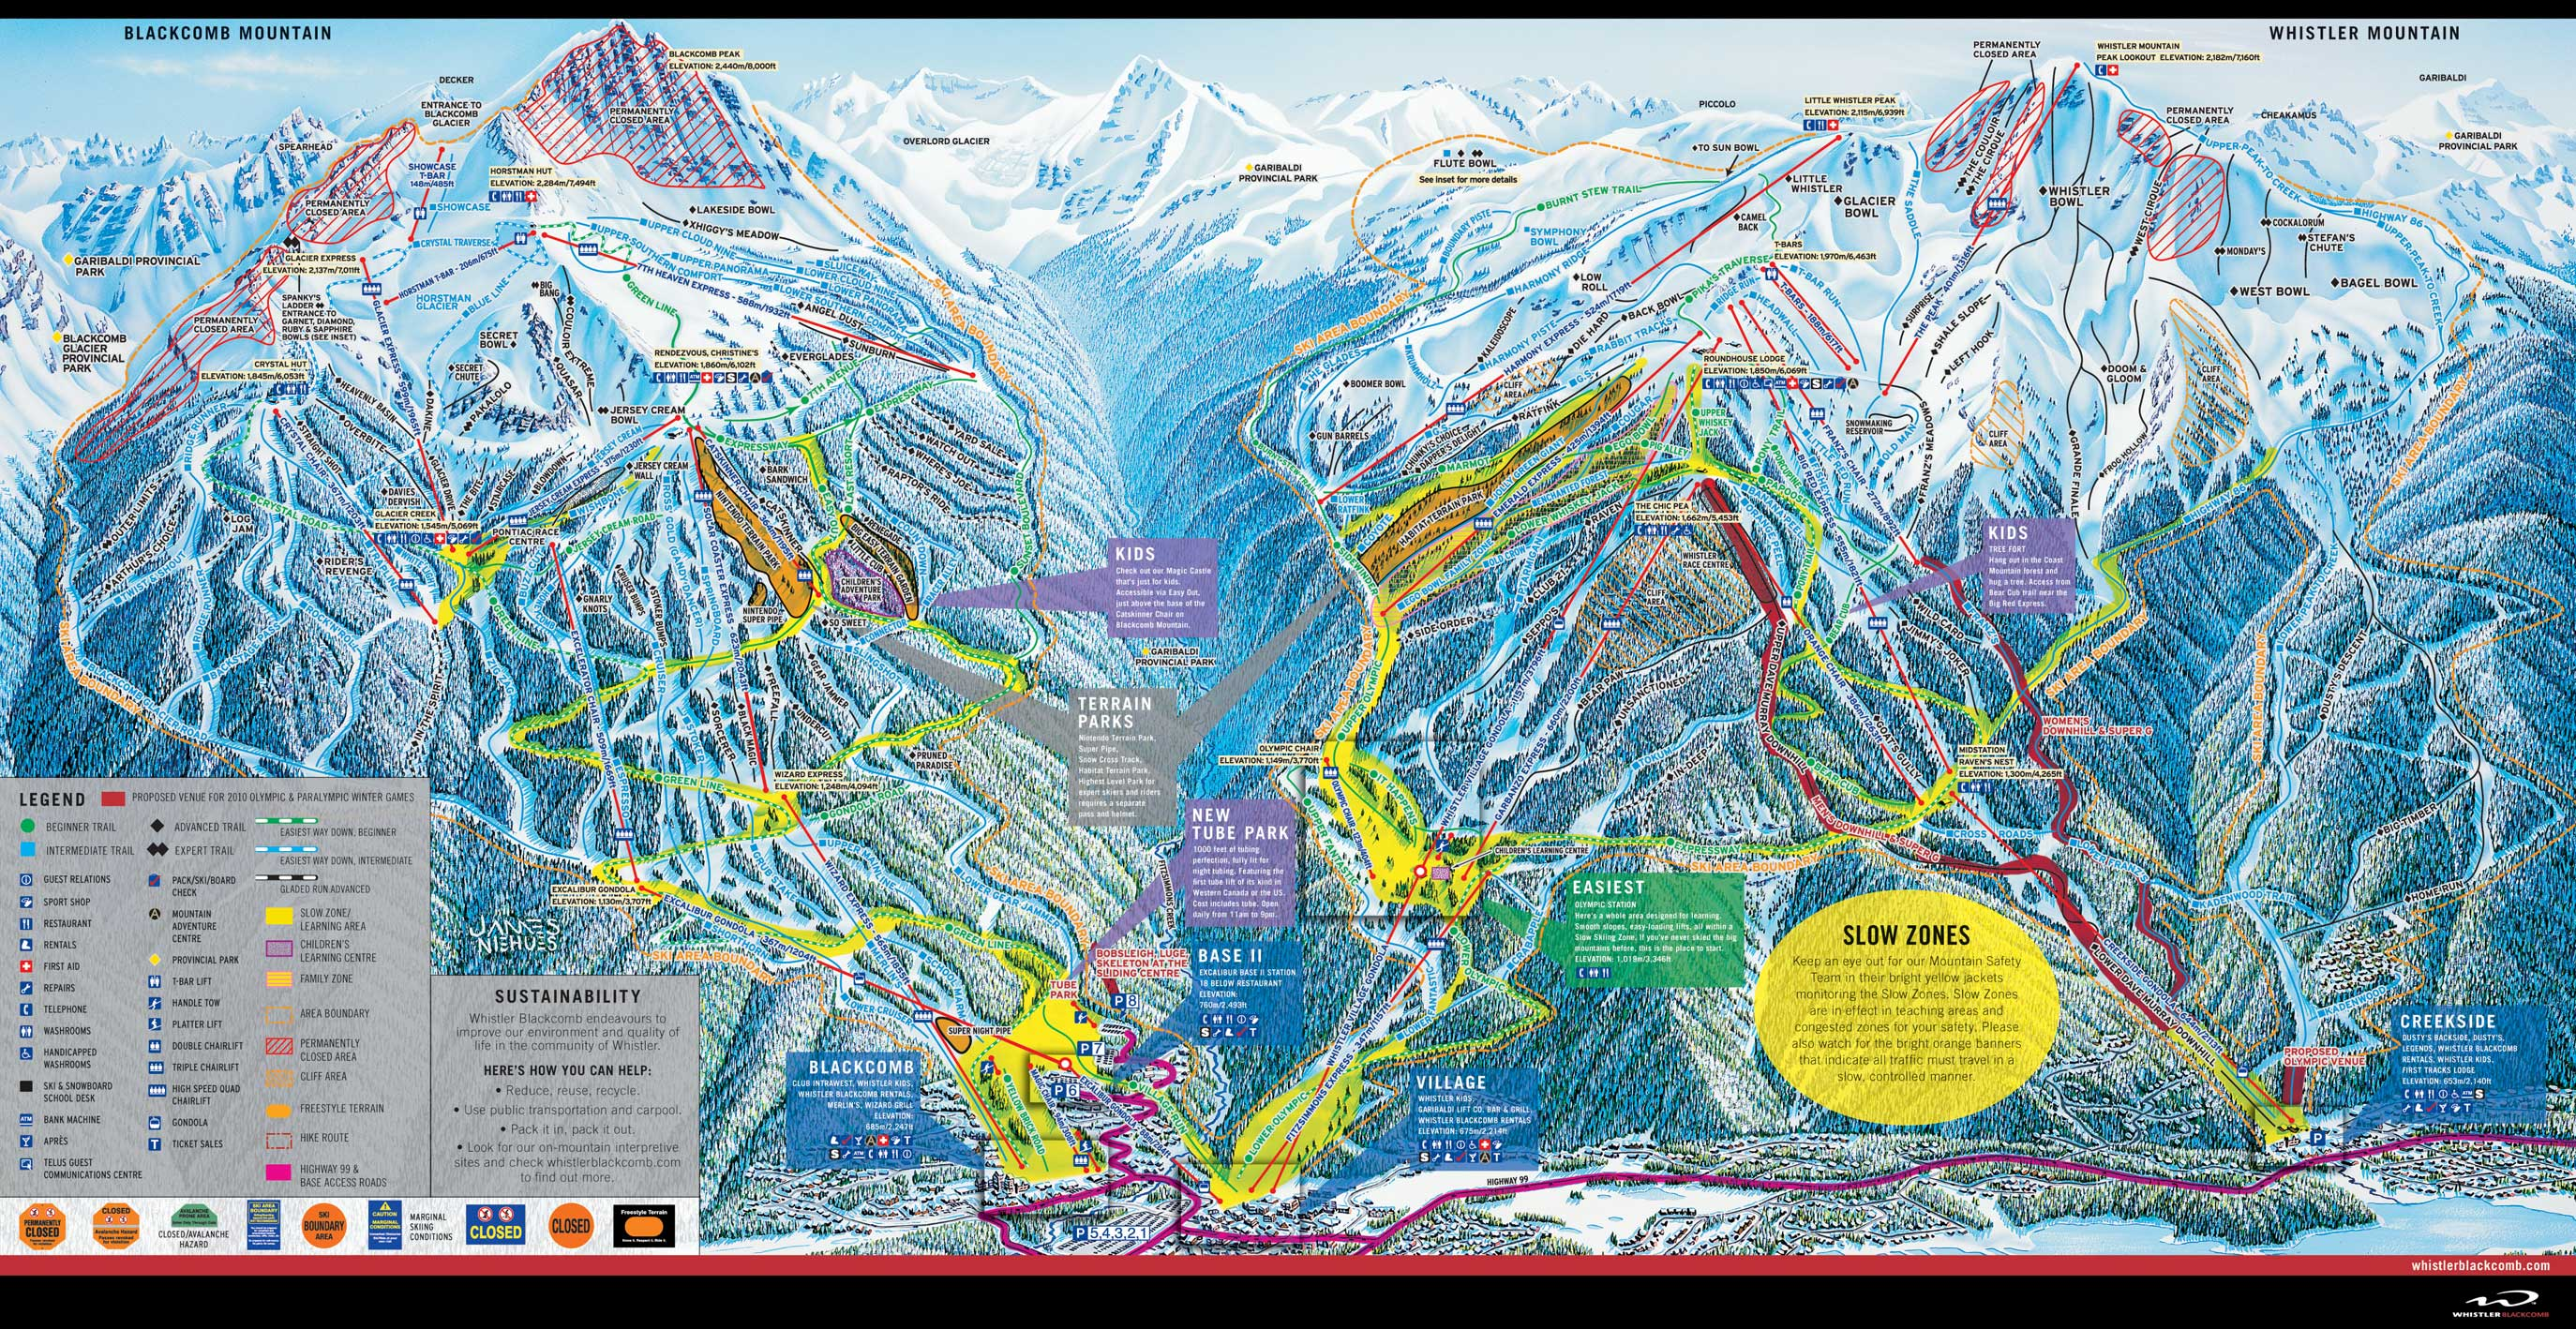 whistler blackcomb ski trail map 2005-06 - whistler canada • mappery